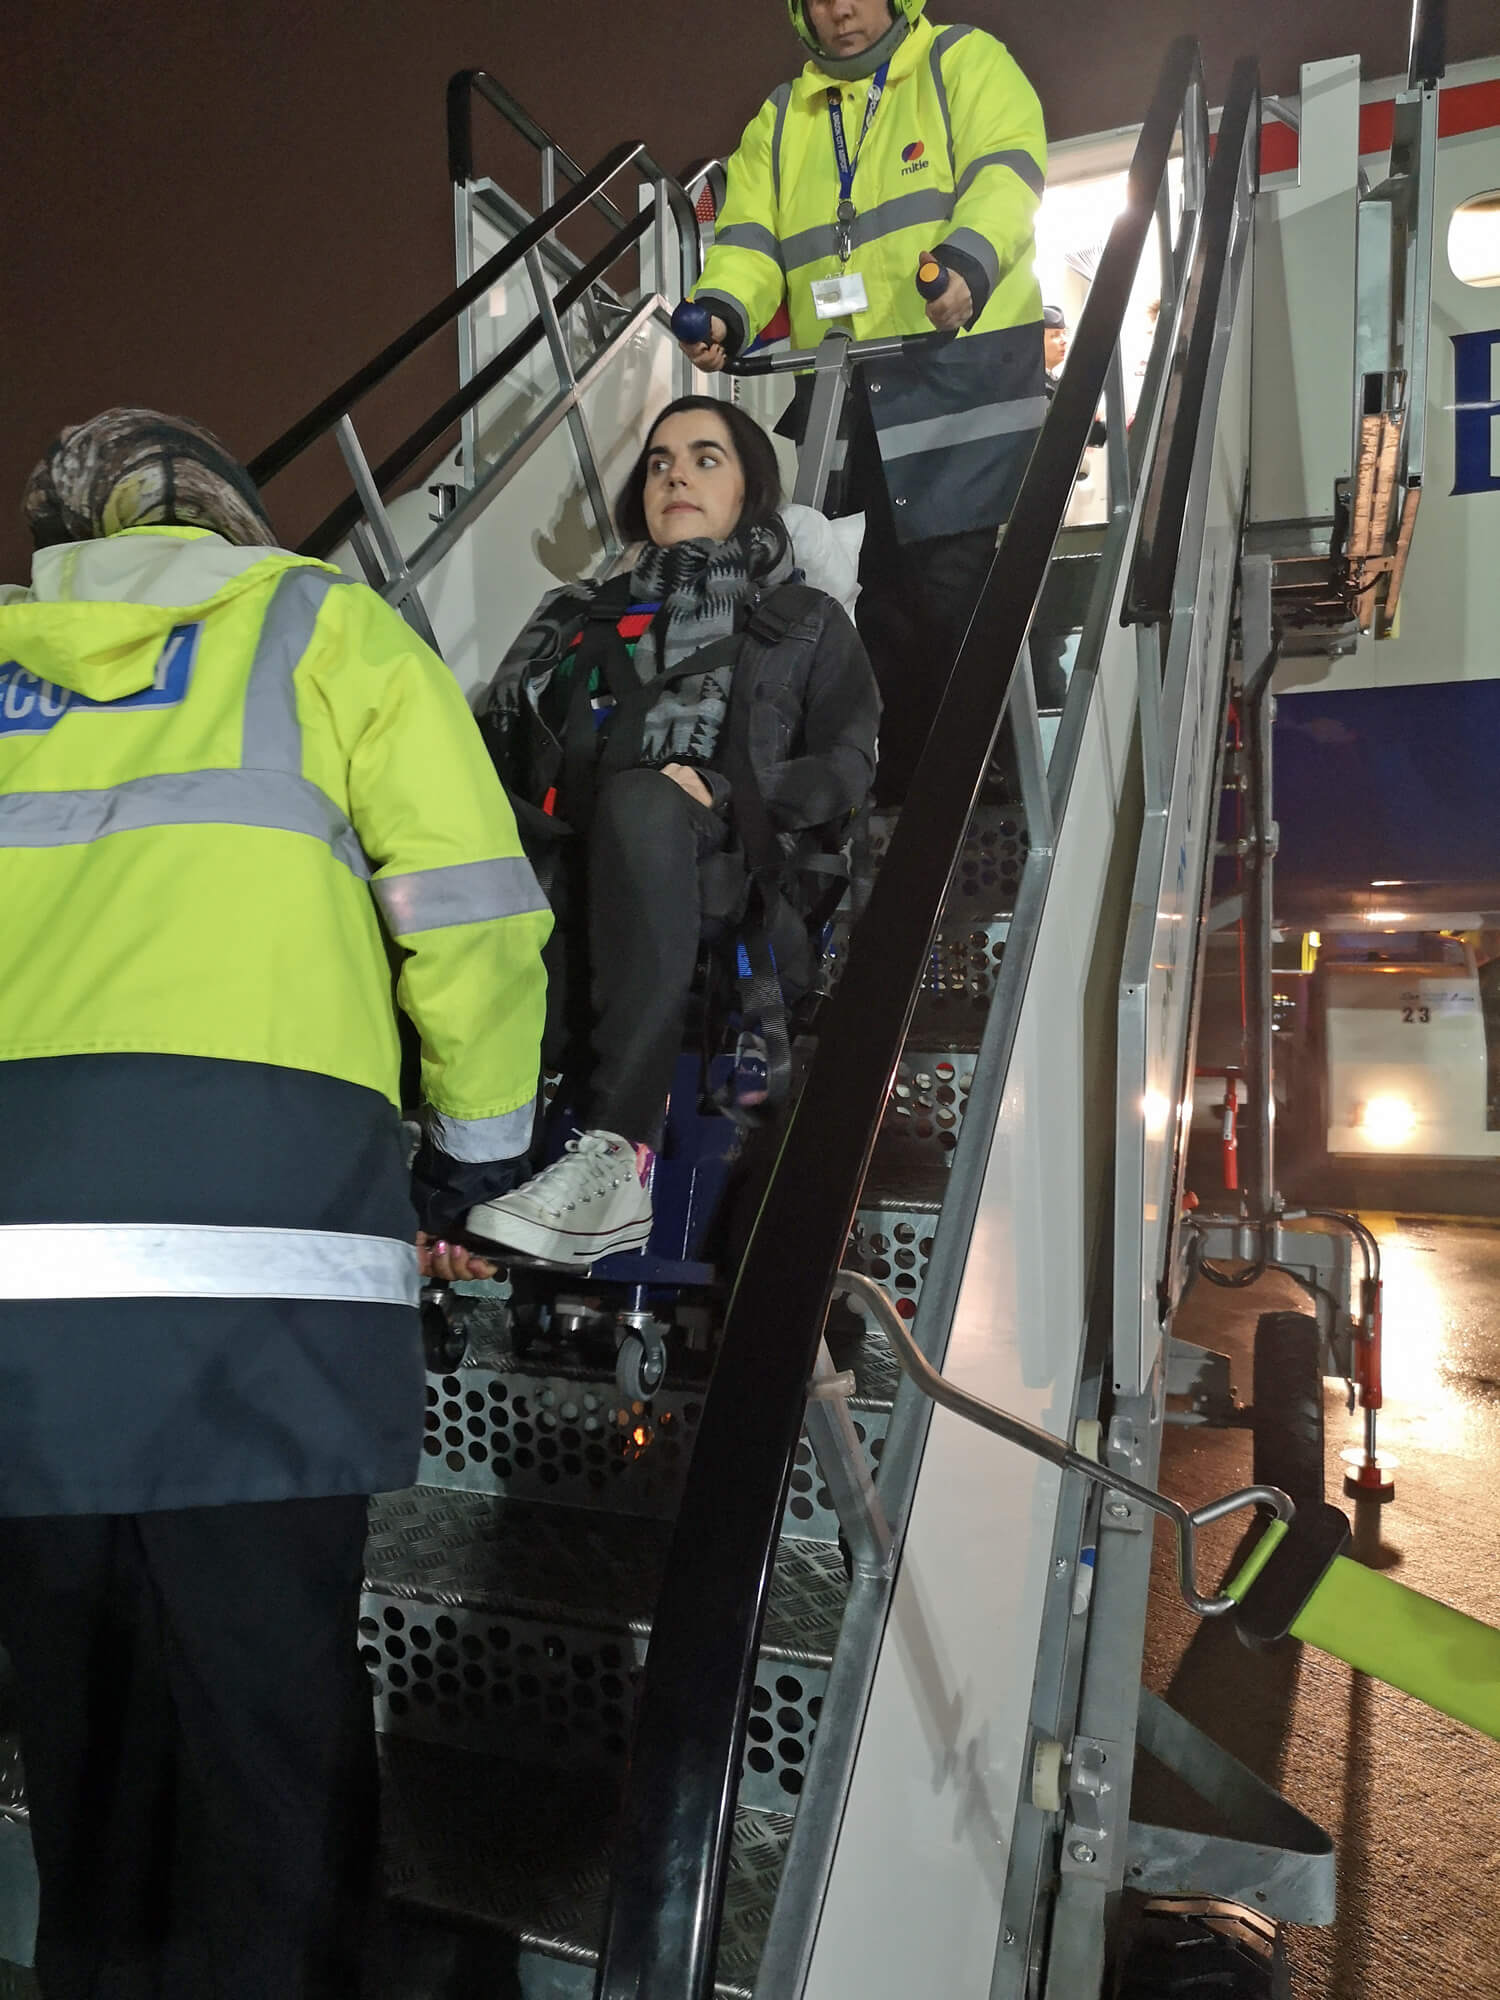 Emma sitting in the stairclimber and being taken up the aircraft stairs with airport staff. This is a view from the bottom of the stairs looking up.